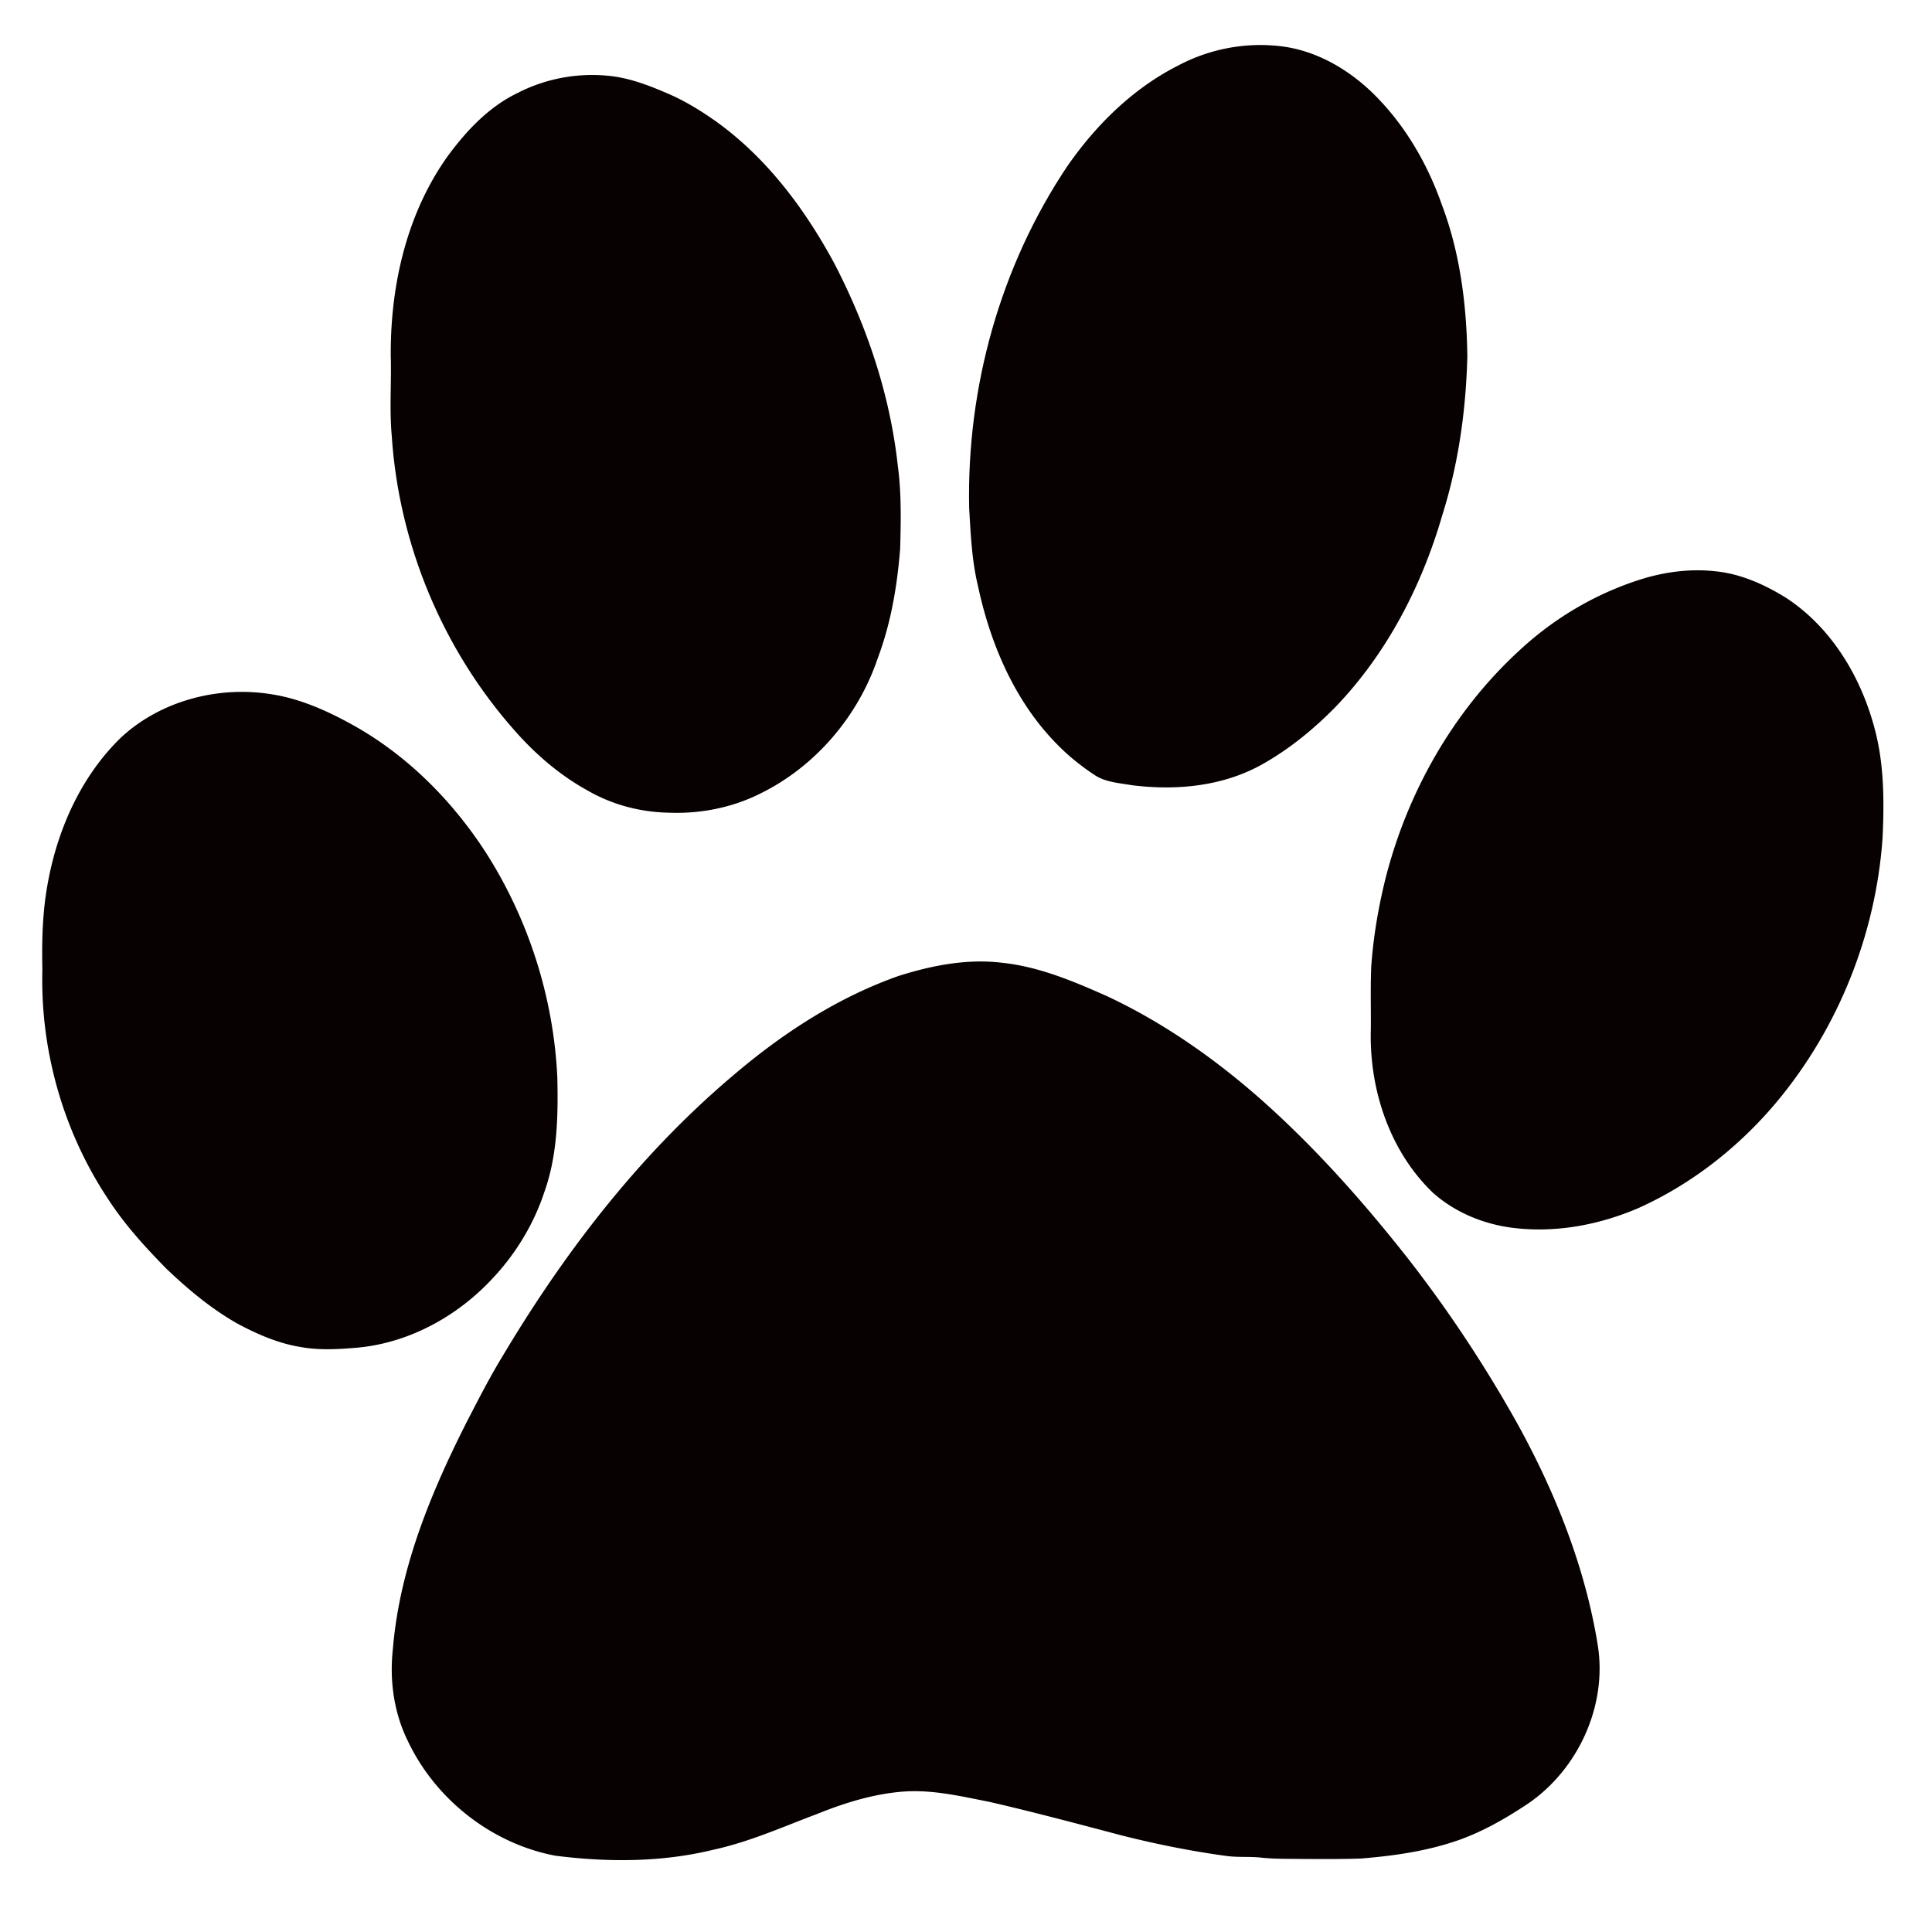 Husky clipart paw.  collection of cougar